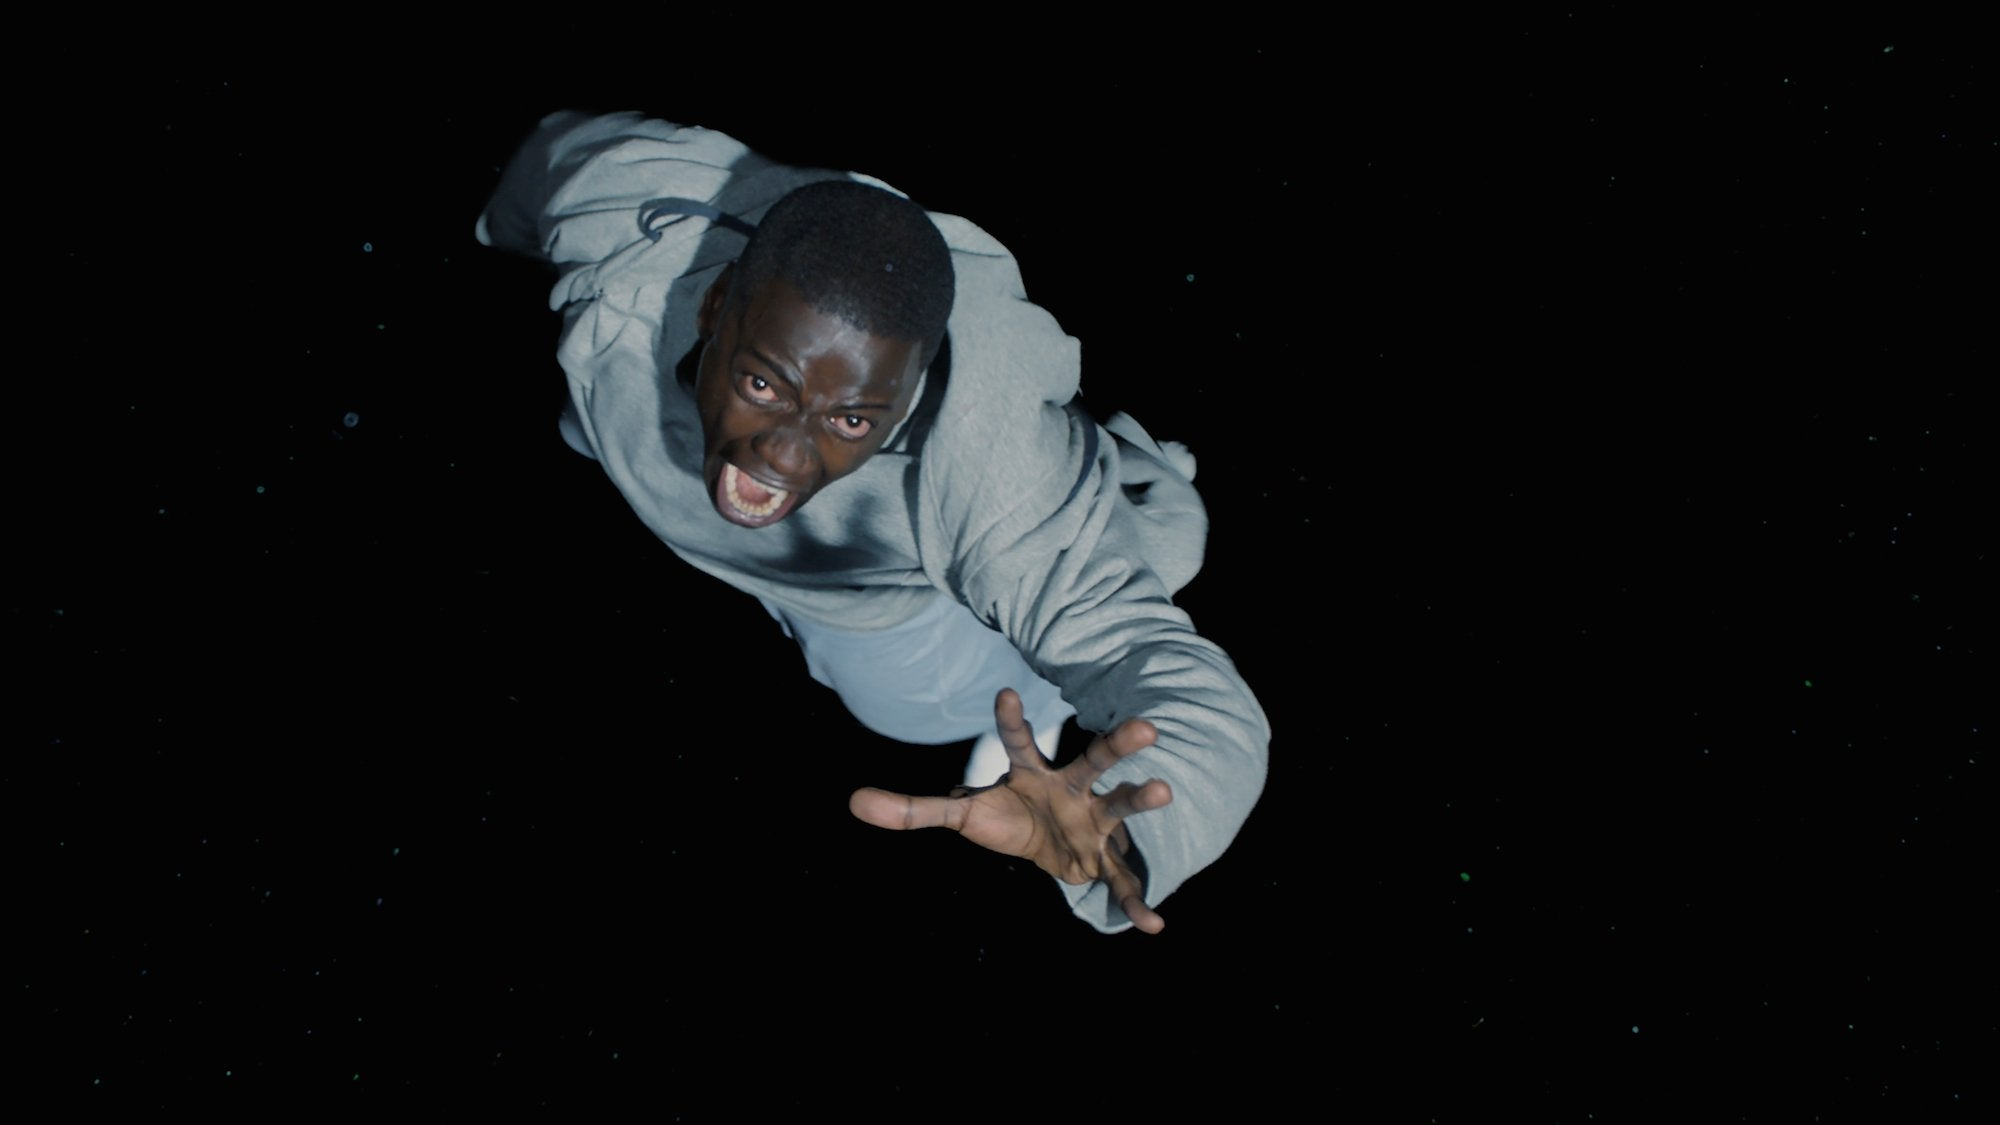 Jordan Peele Says He Will Seriously Consider A Sequel To Get Out